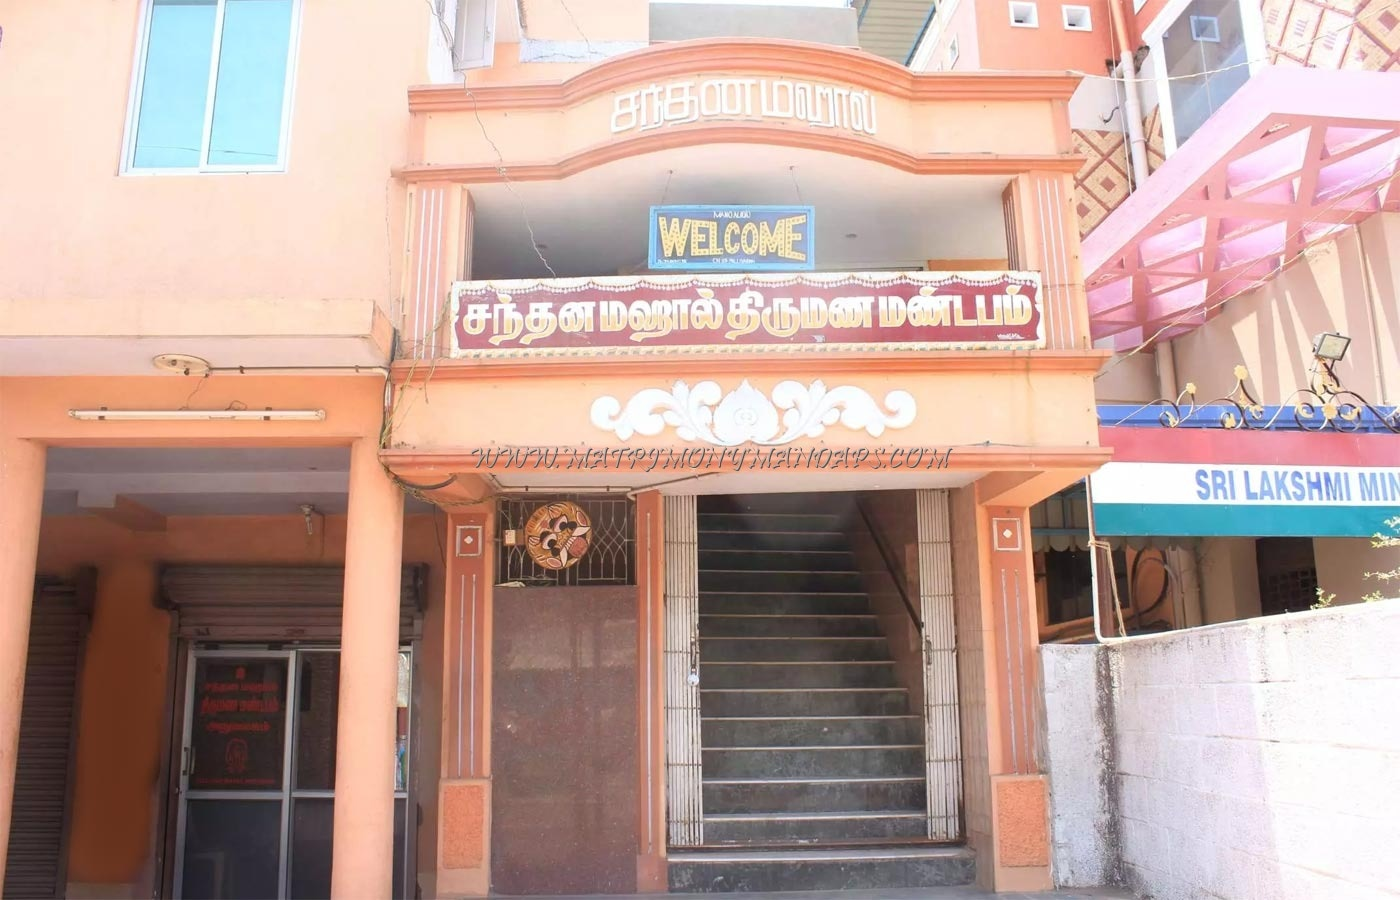 Find the availability of the Sandhana Mahal Thirumana Mandapam in Adambakkam, Chennai and avail special offers